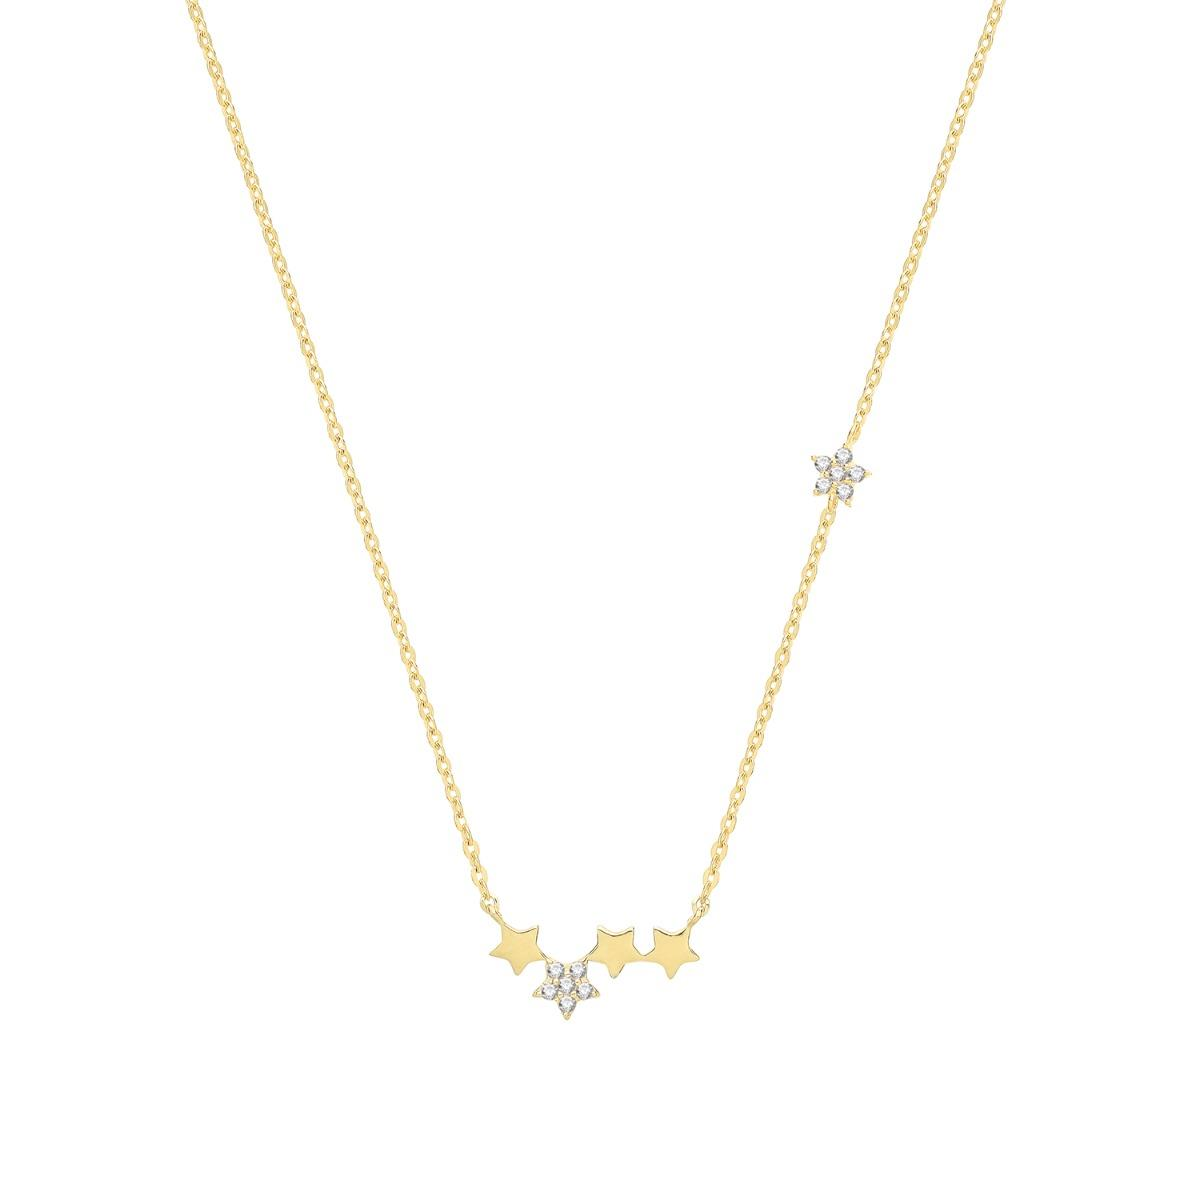 Soleil Collection Multi Star Necklace   9K Yellow Gold